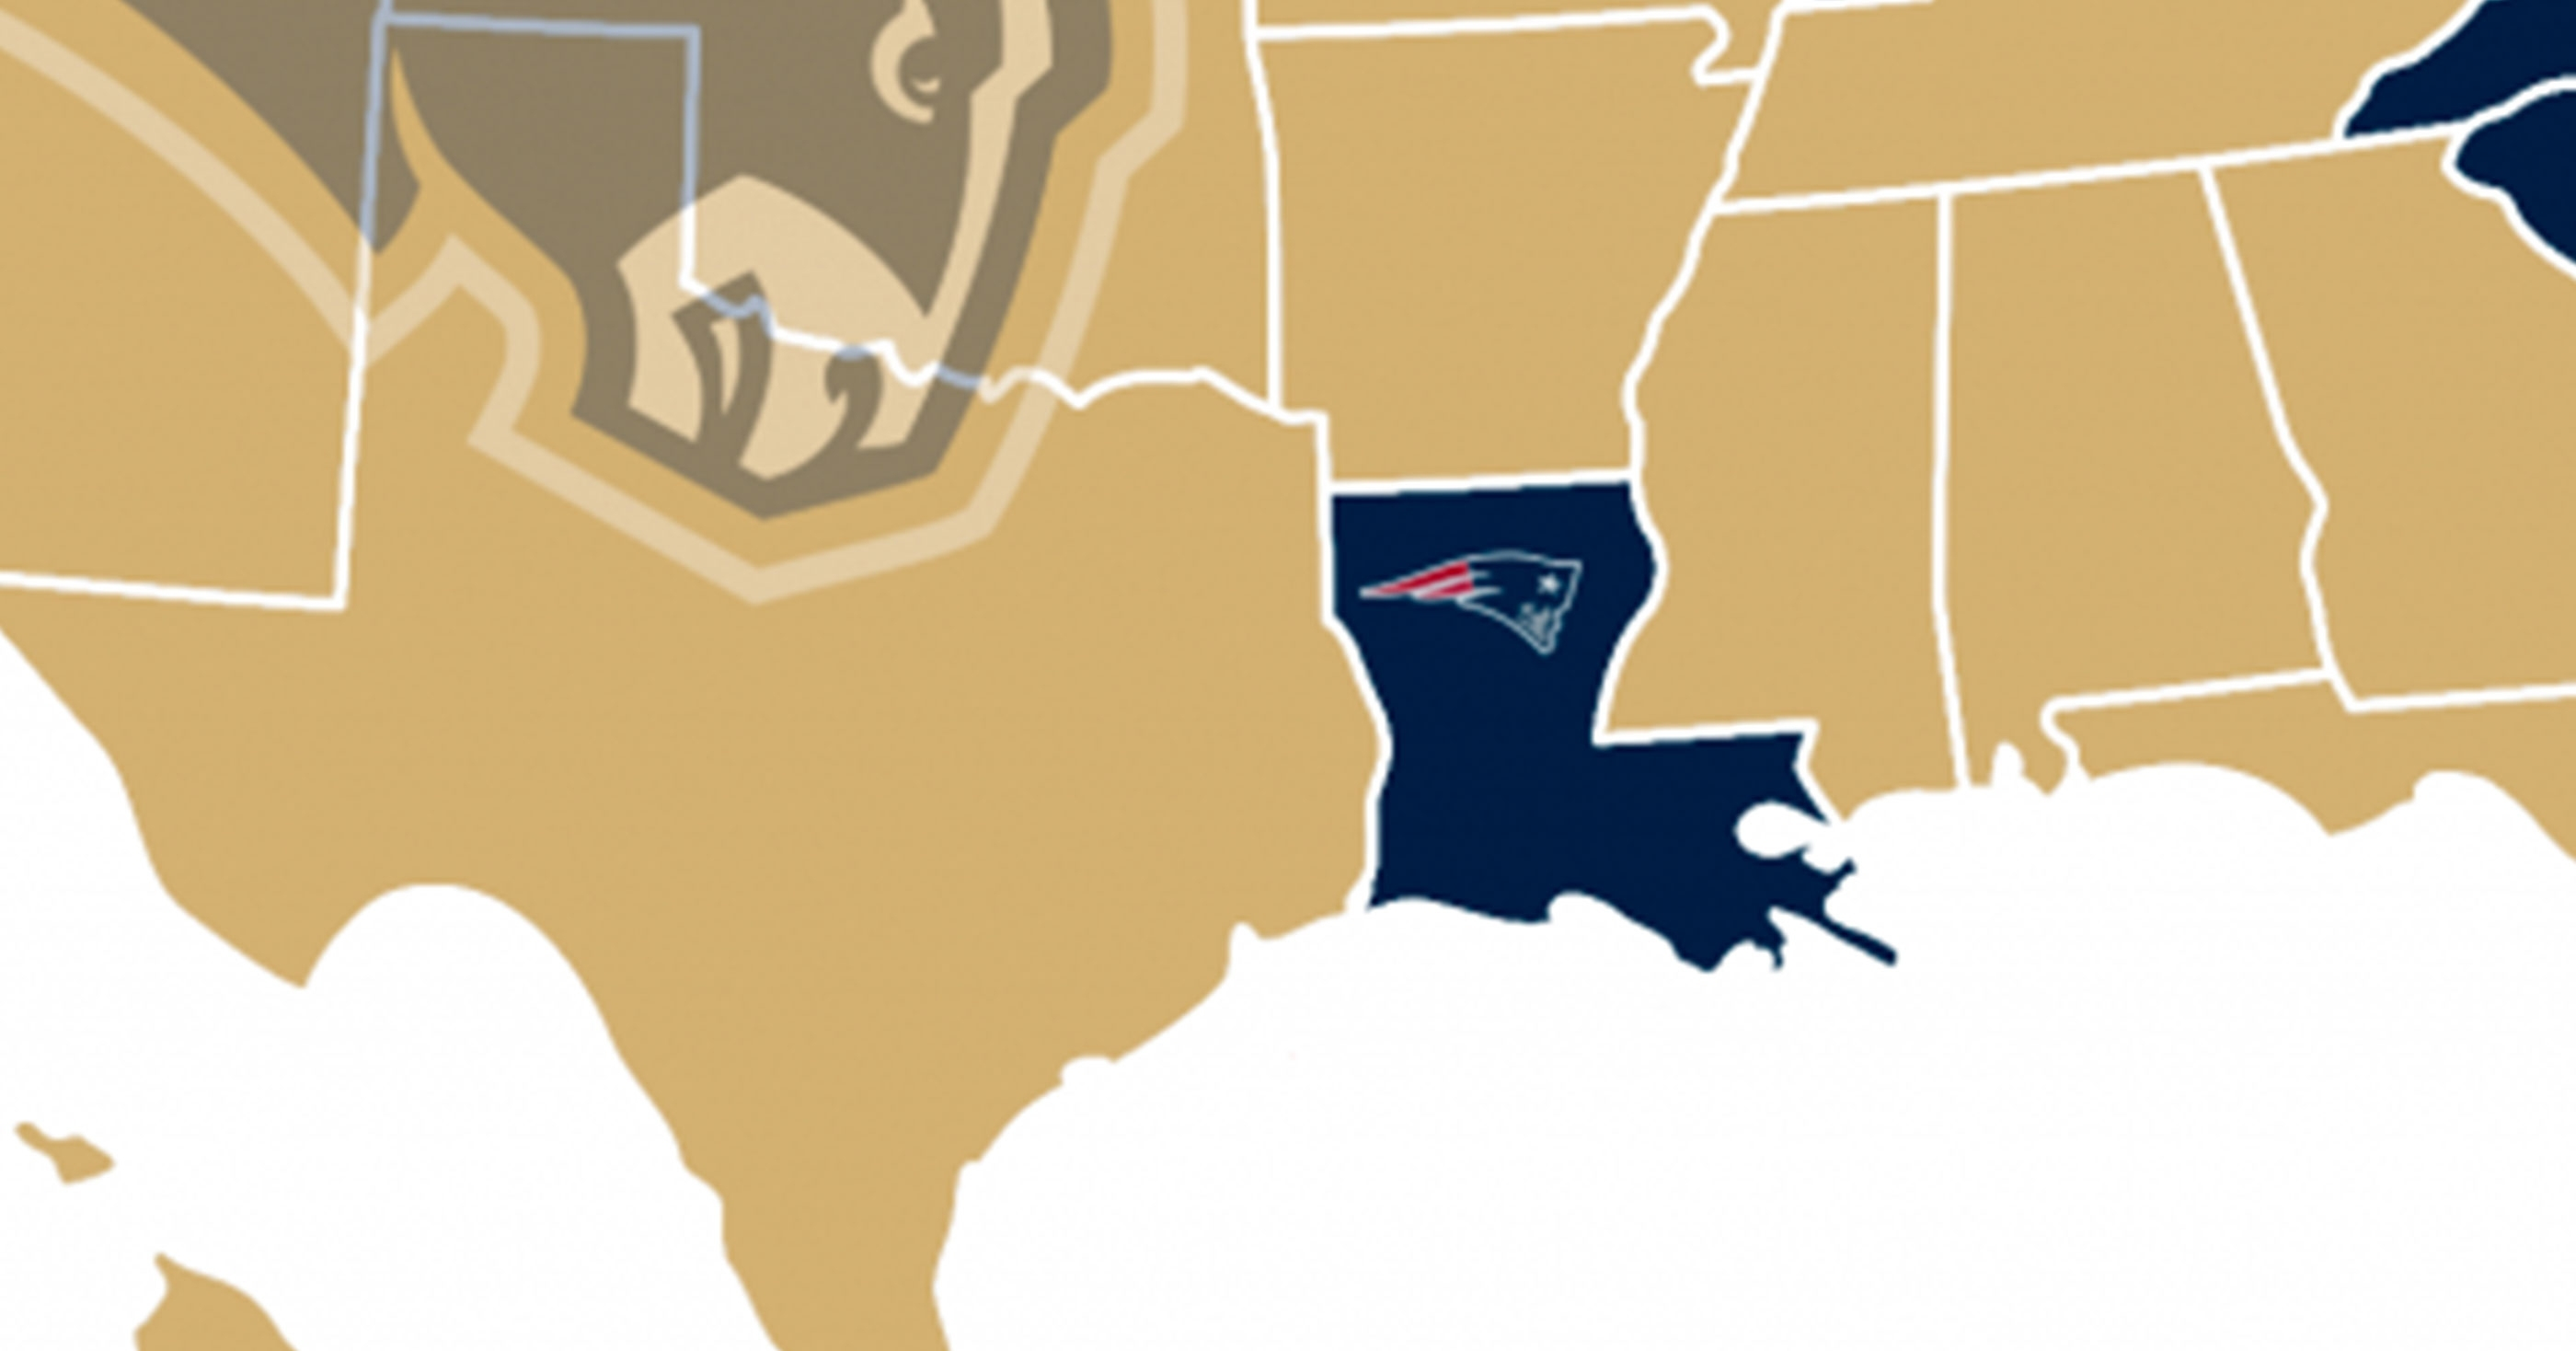 Map Shows Which Team Each State Is Rooting For In Super Bowl within Super Bowl Map 2019